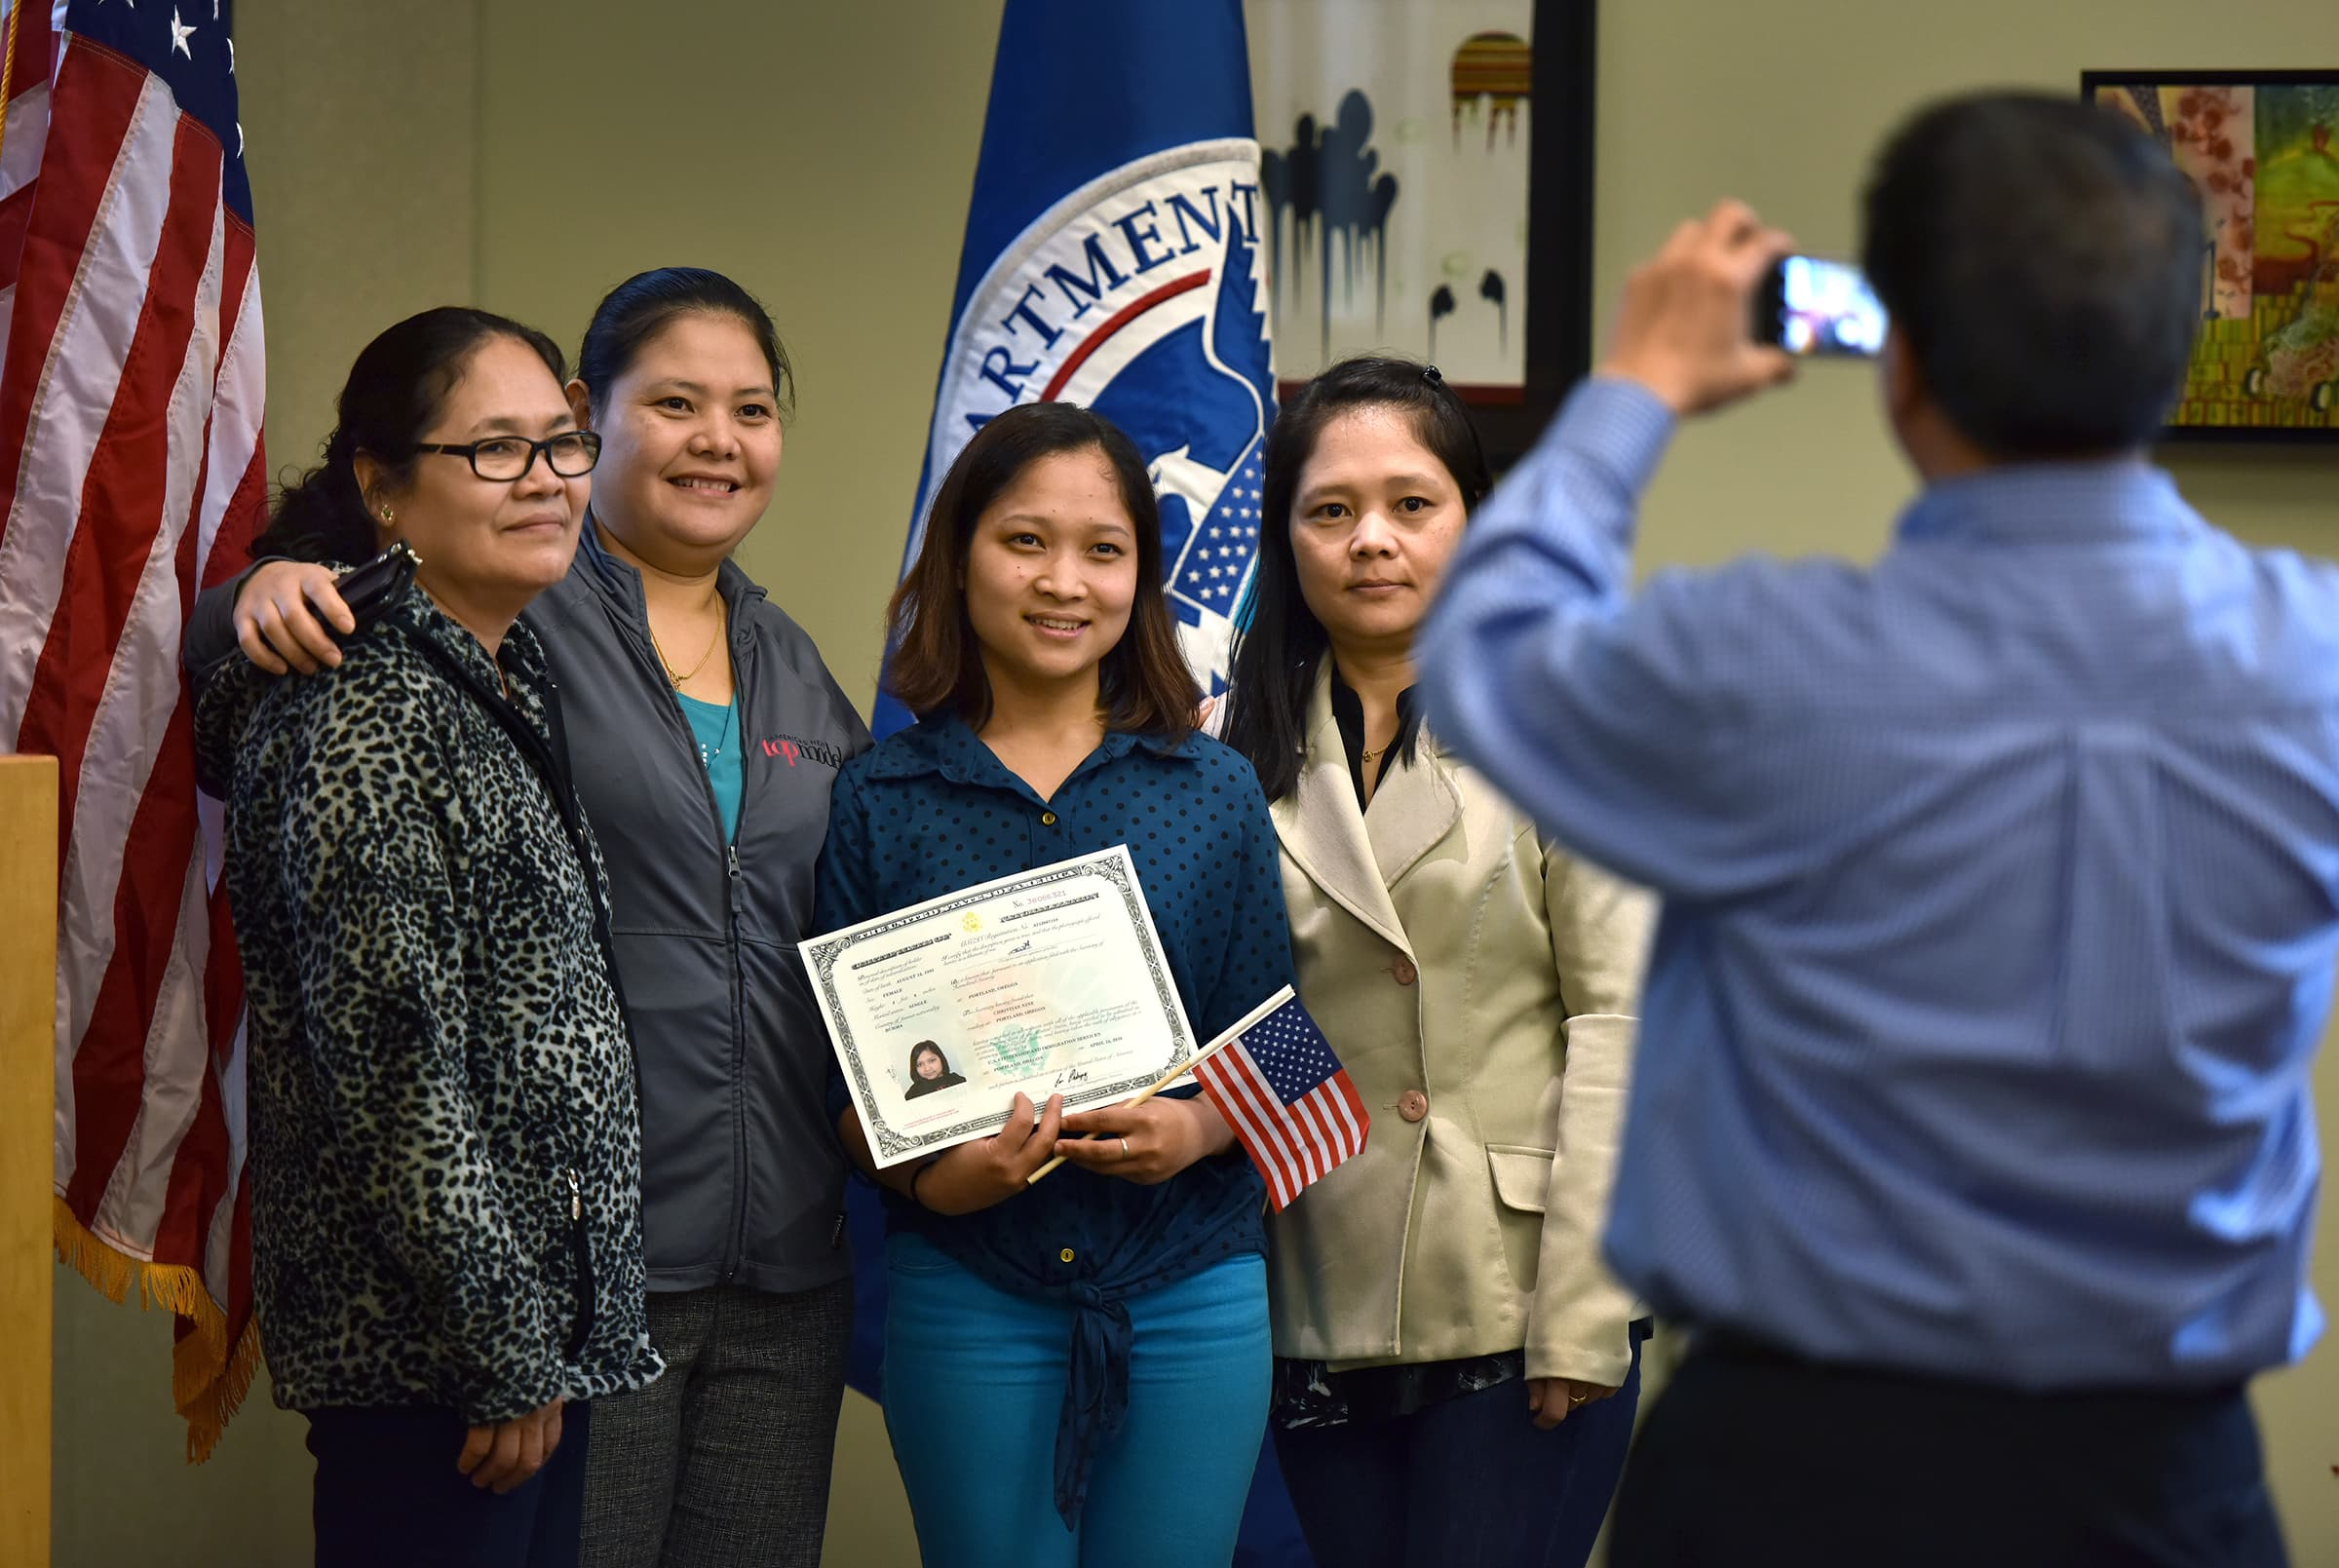 Family naturalization certificate